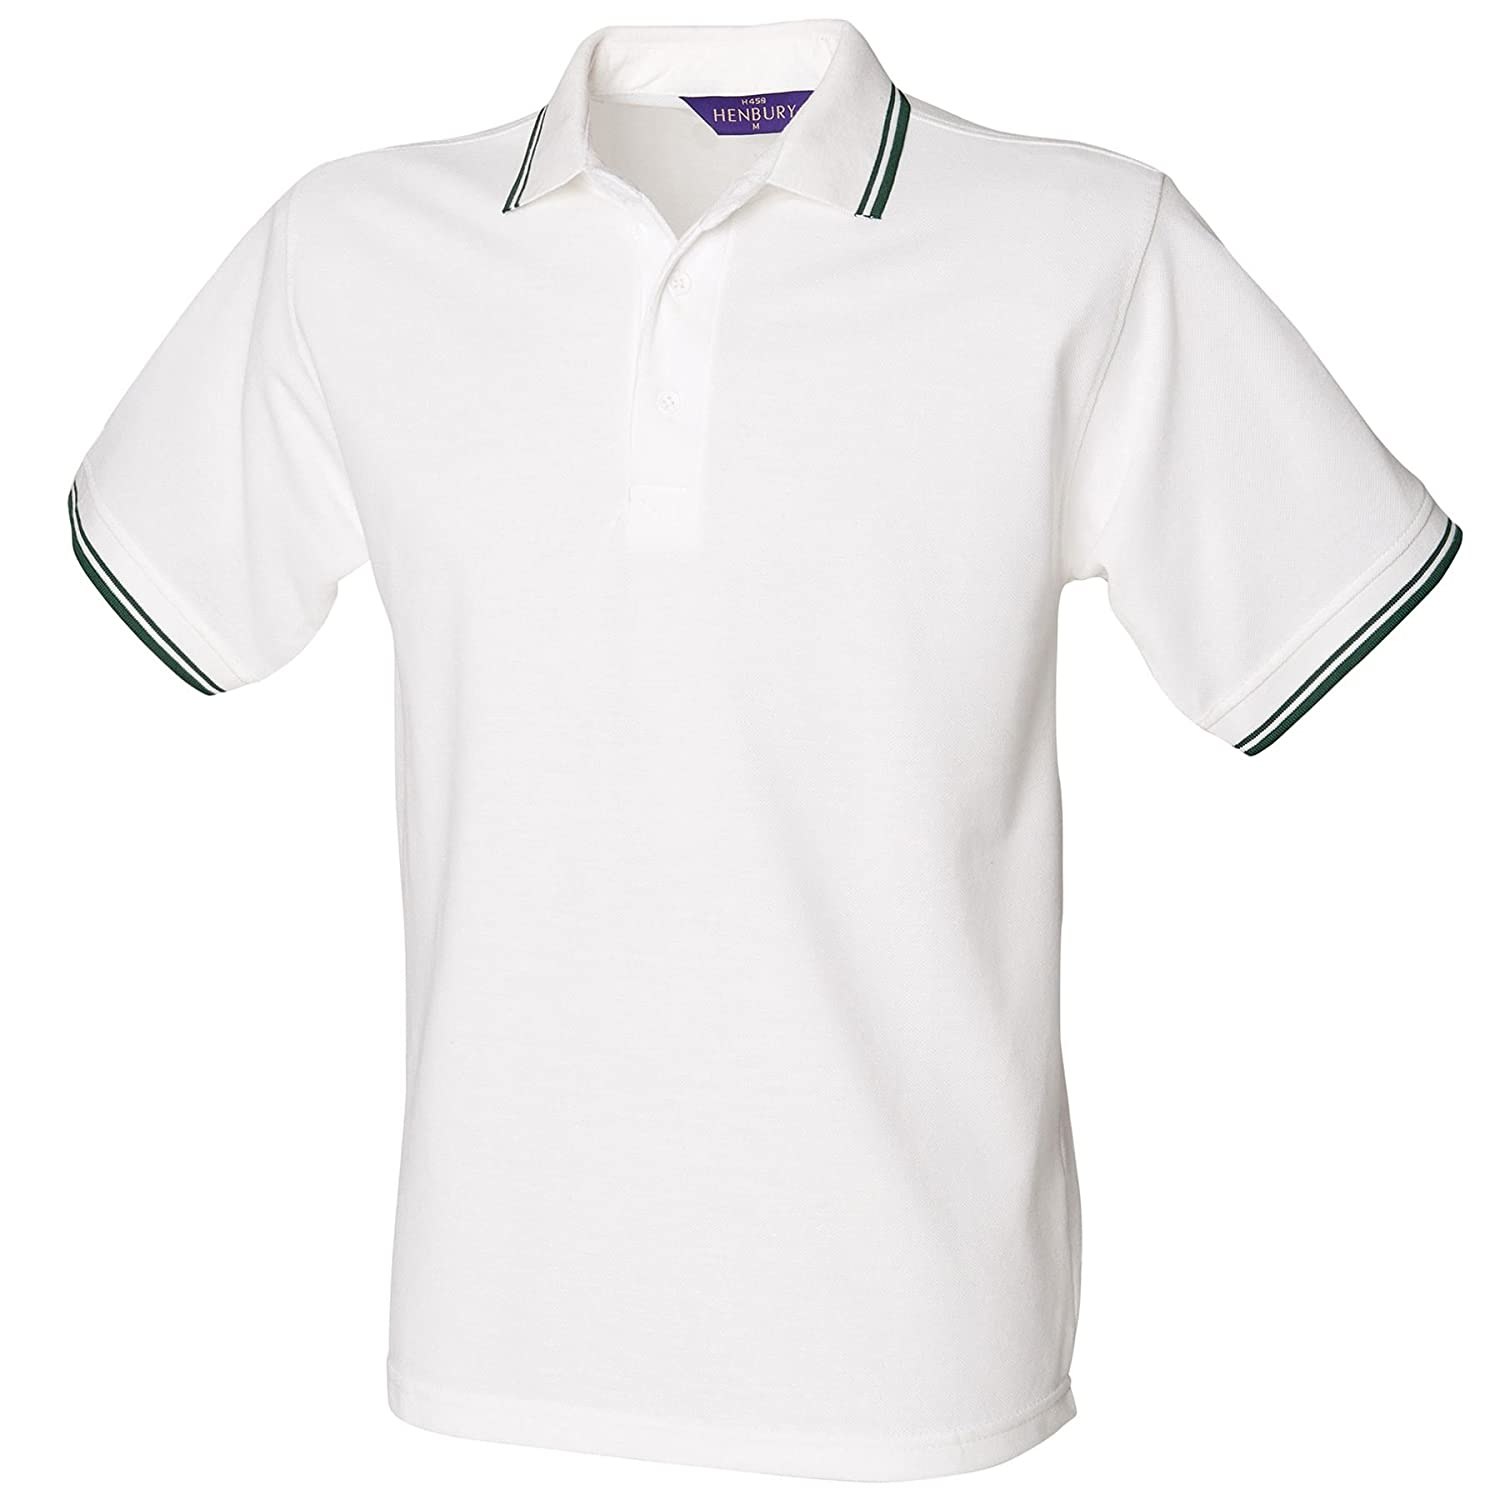 Henbury-Childrens Unisex Poloshirts-Tops-65/35 kids tipped polo- RYTE_Henbury